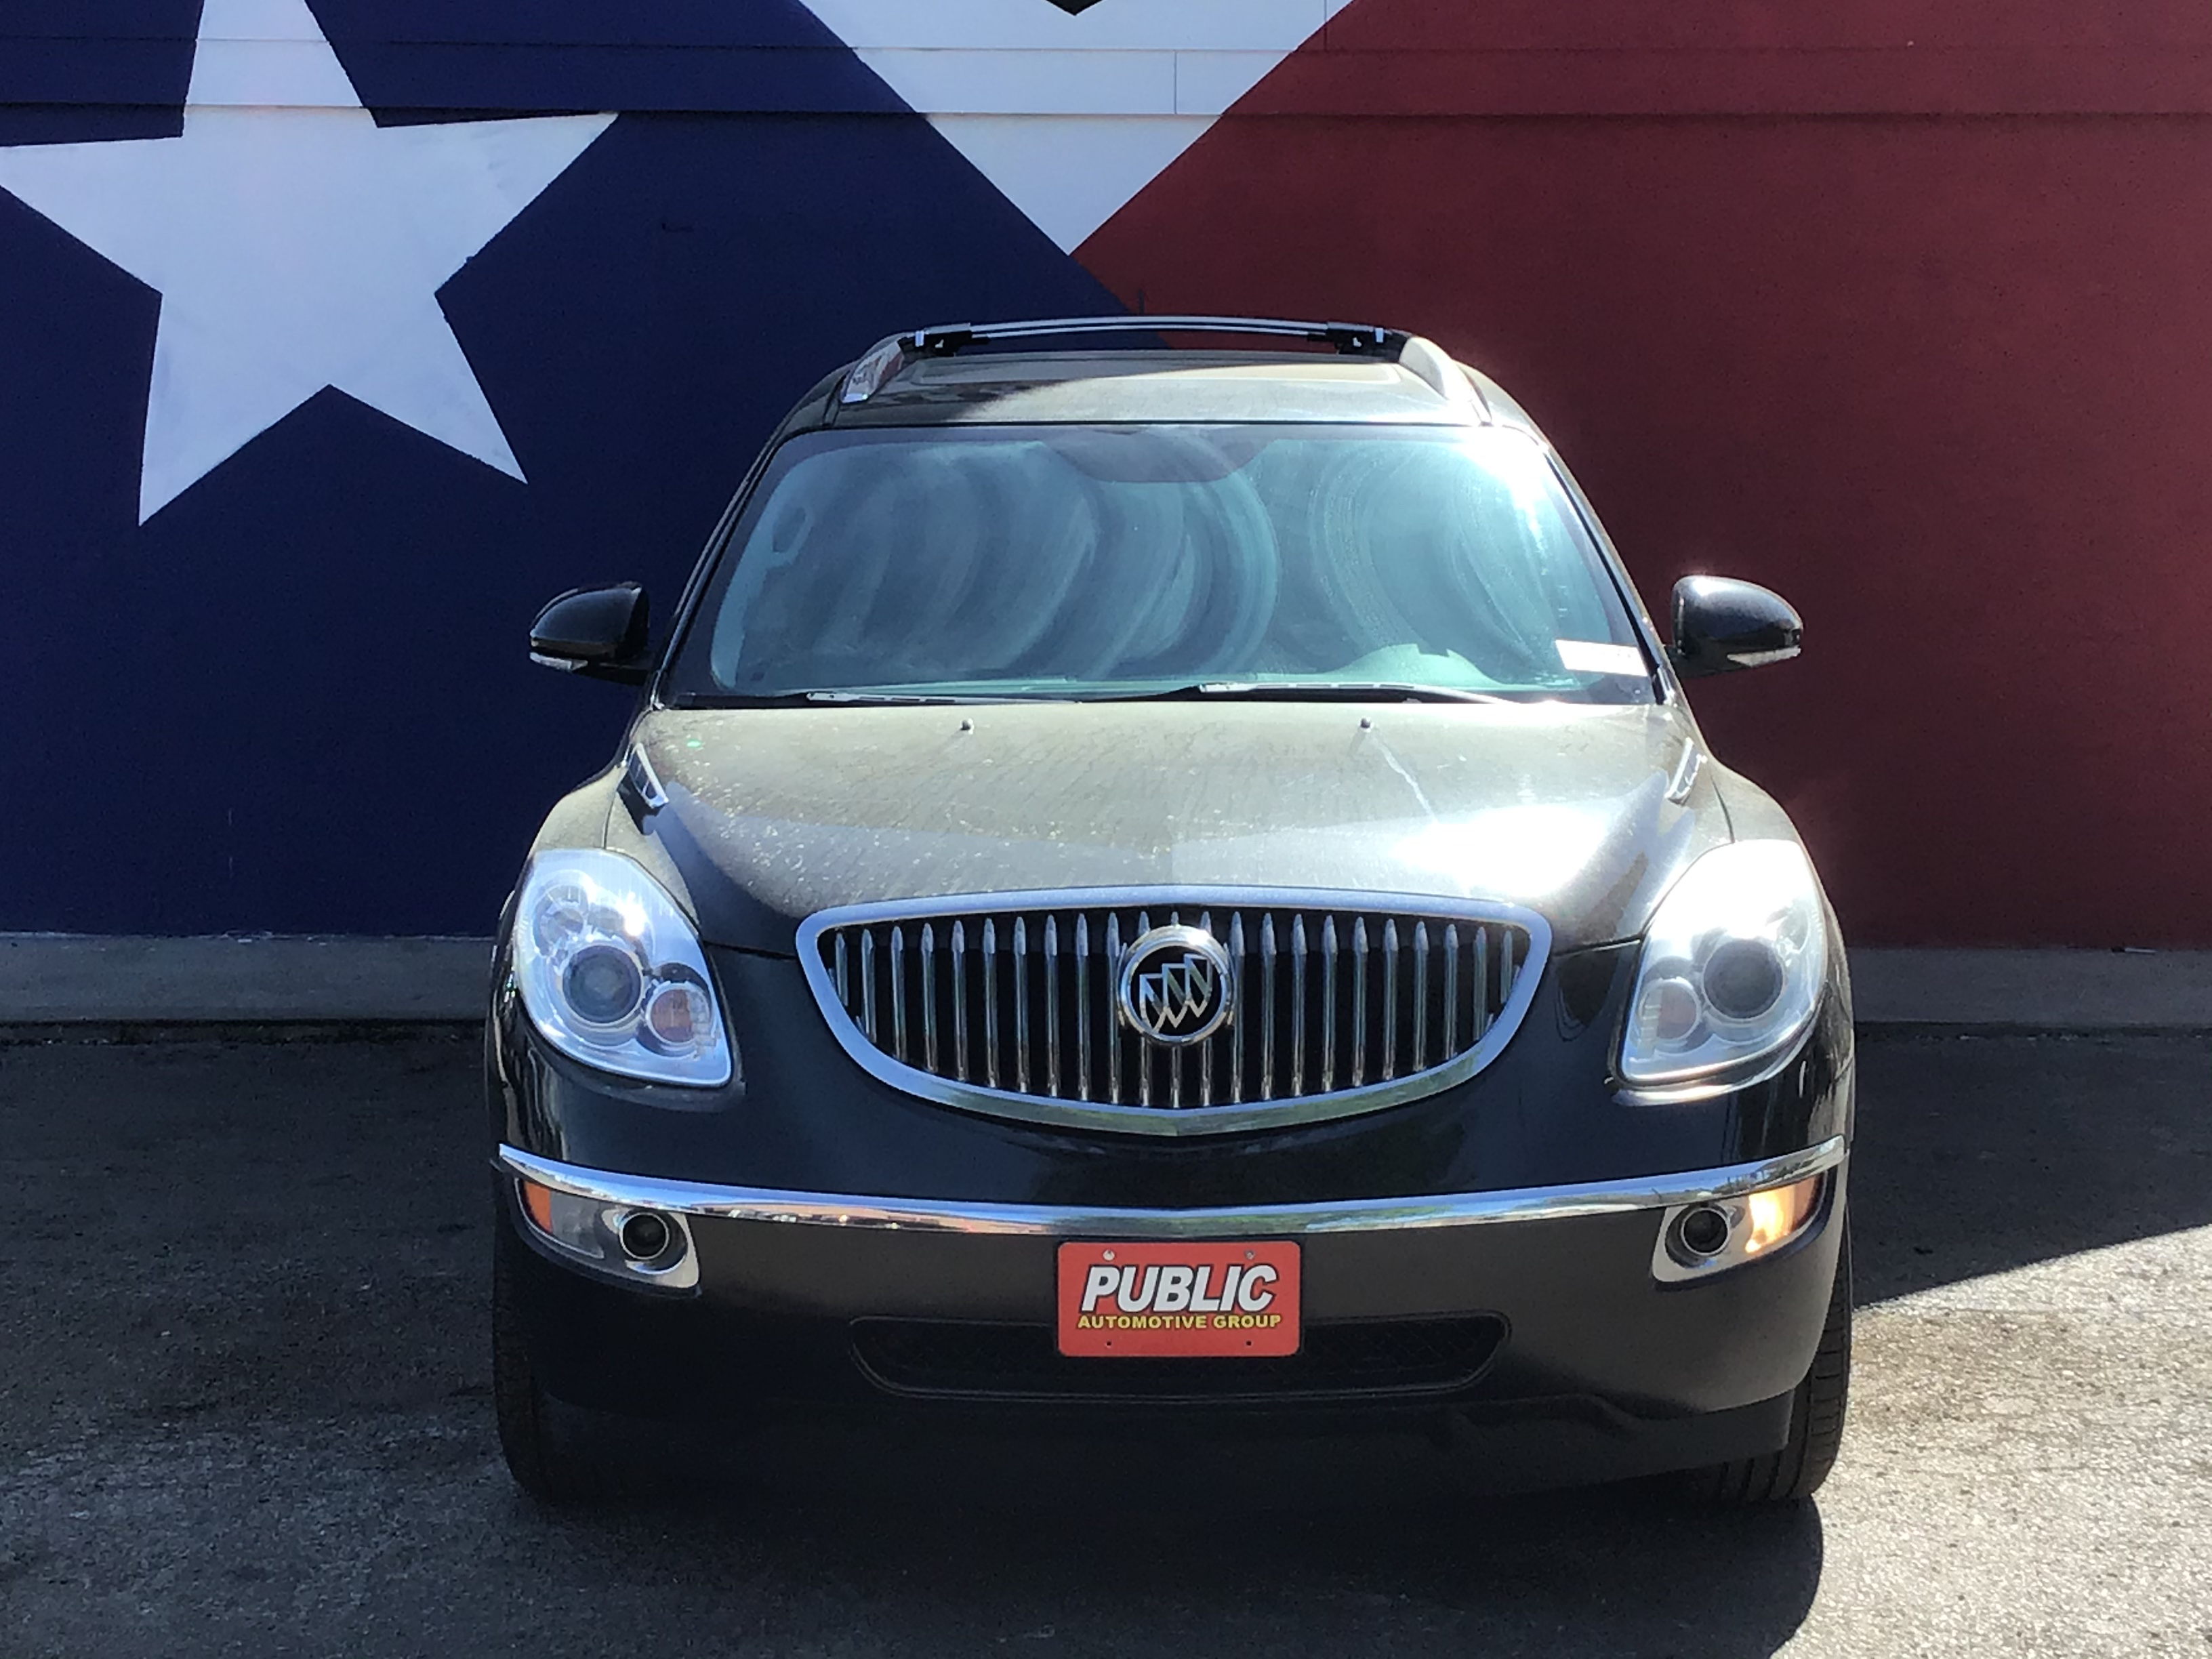 used vehicle - SUV BUICK ENCLAVE 2010